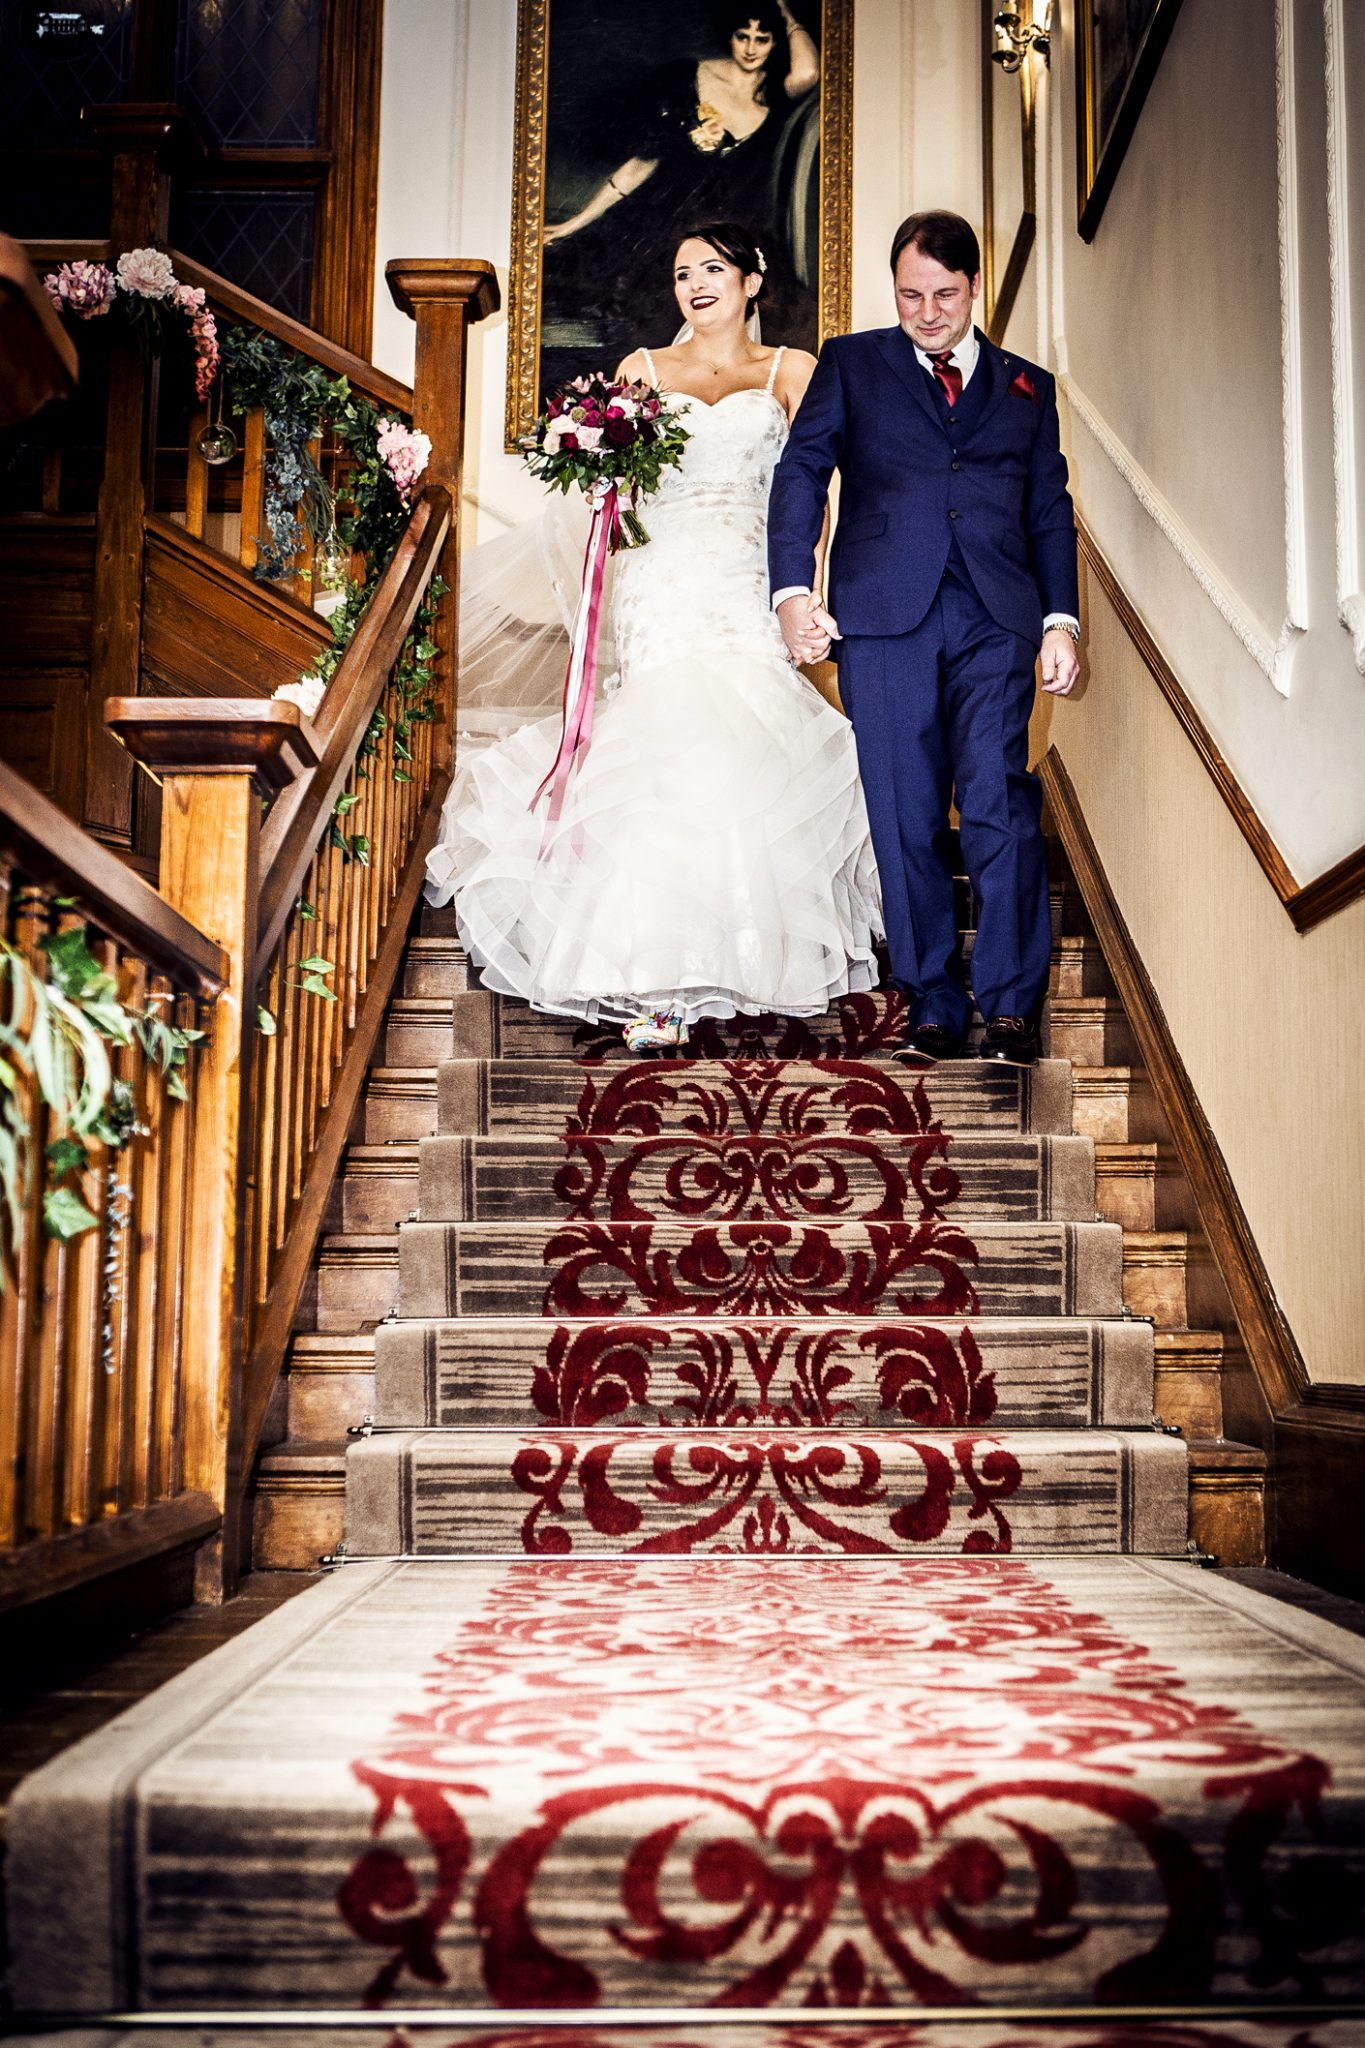 wedding-photography-of-the-brdie-before-the-wedding-ceremony-at-nunsmere-hall-cheshire